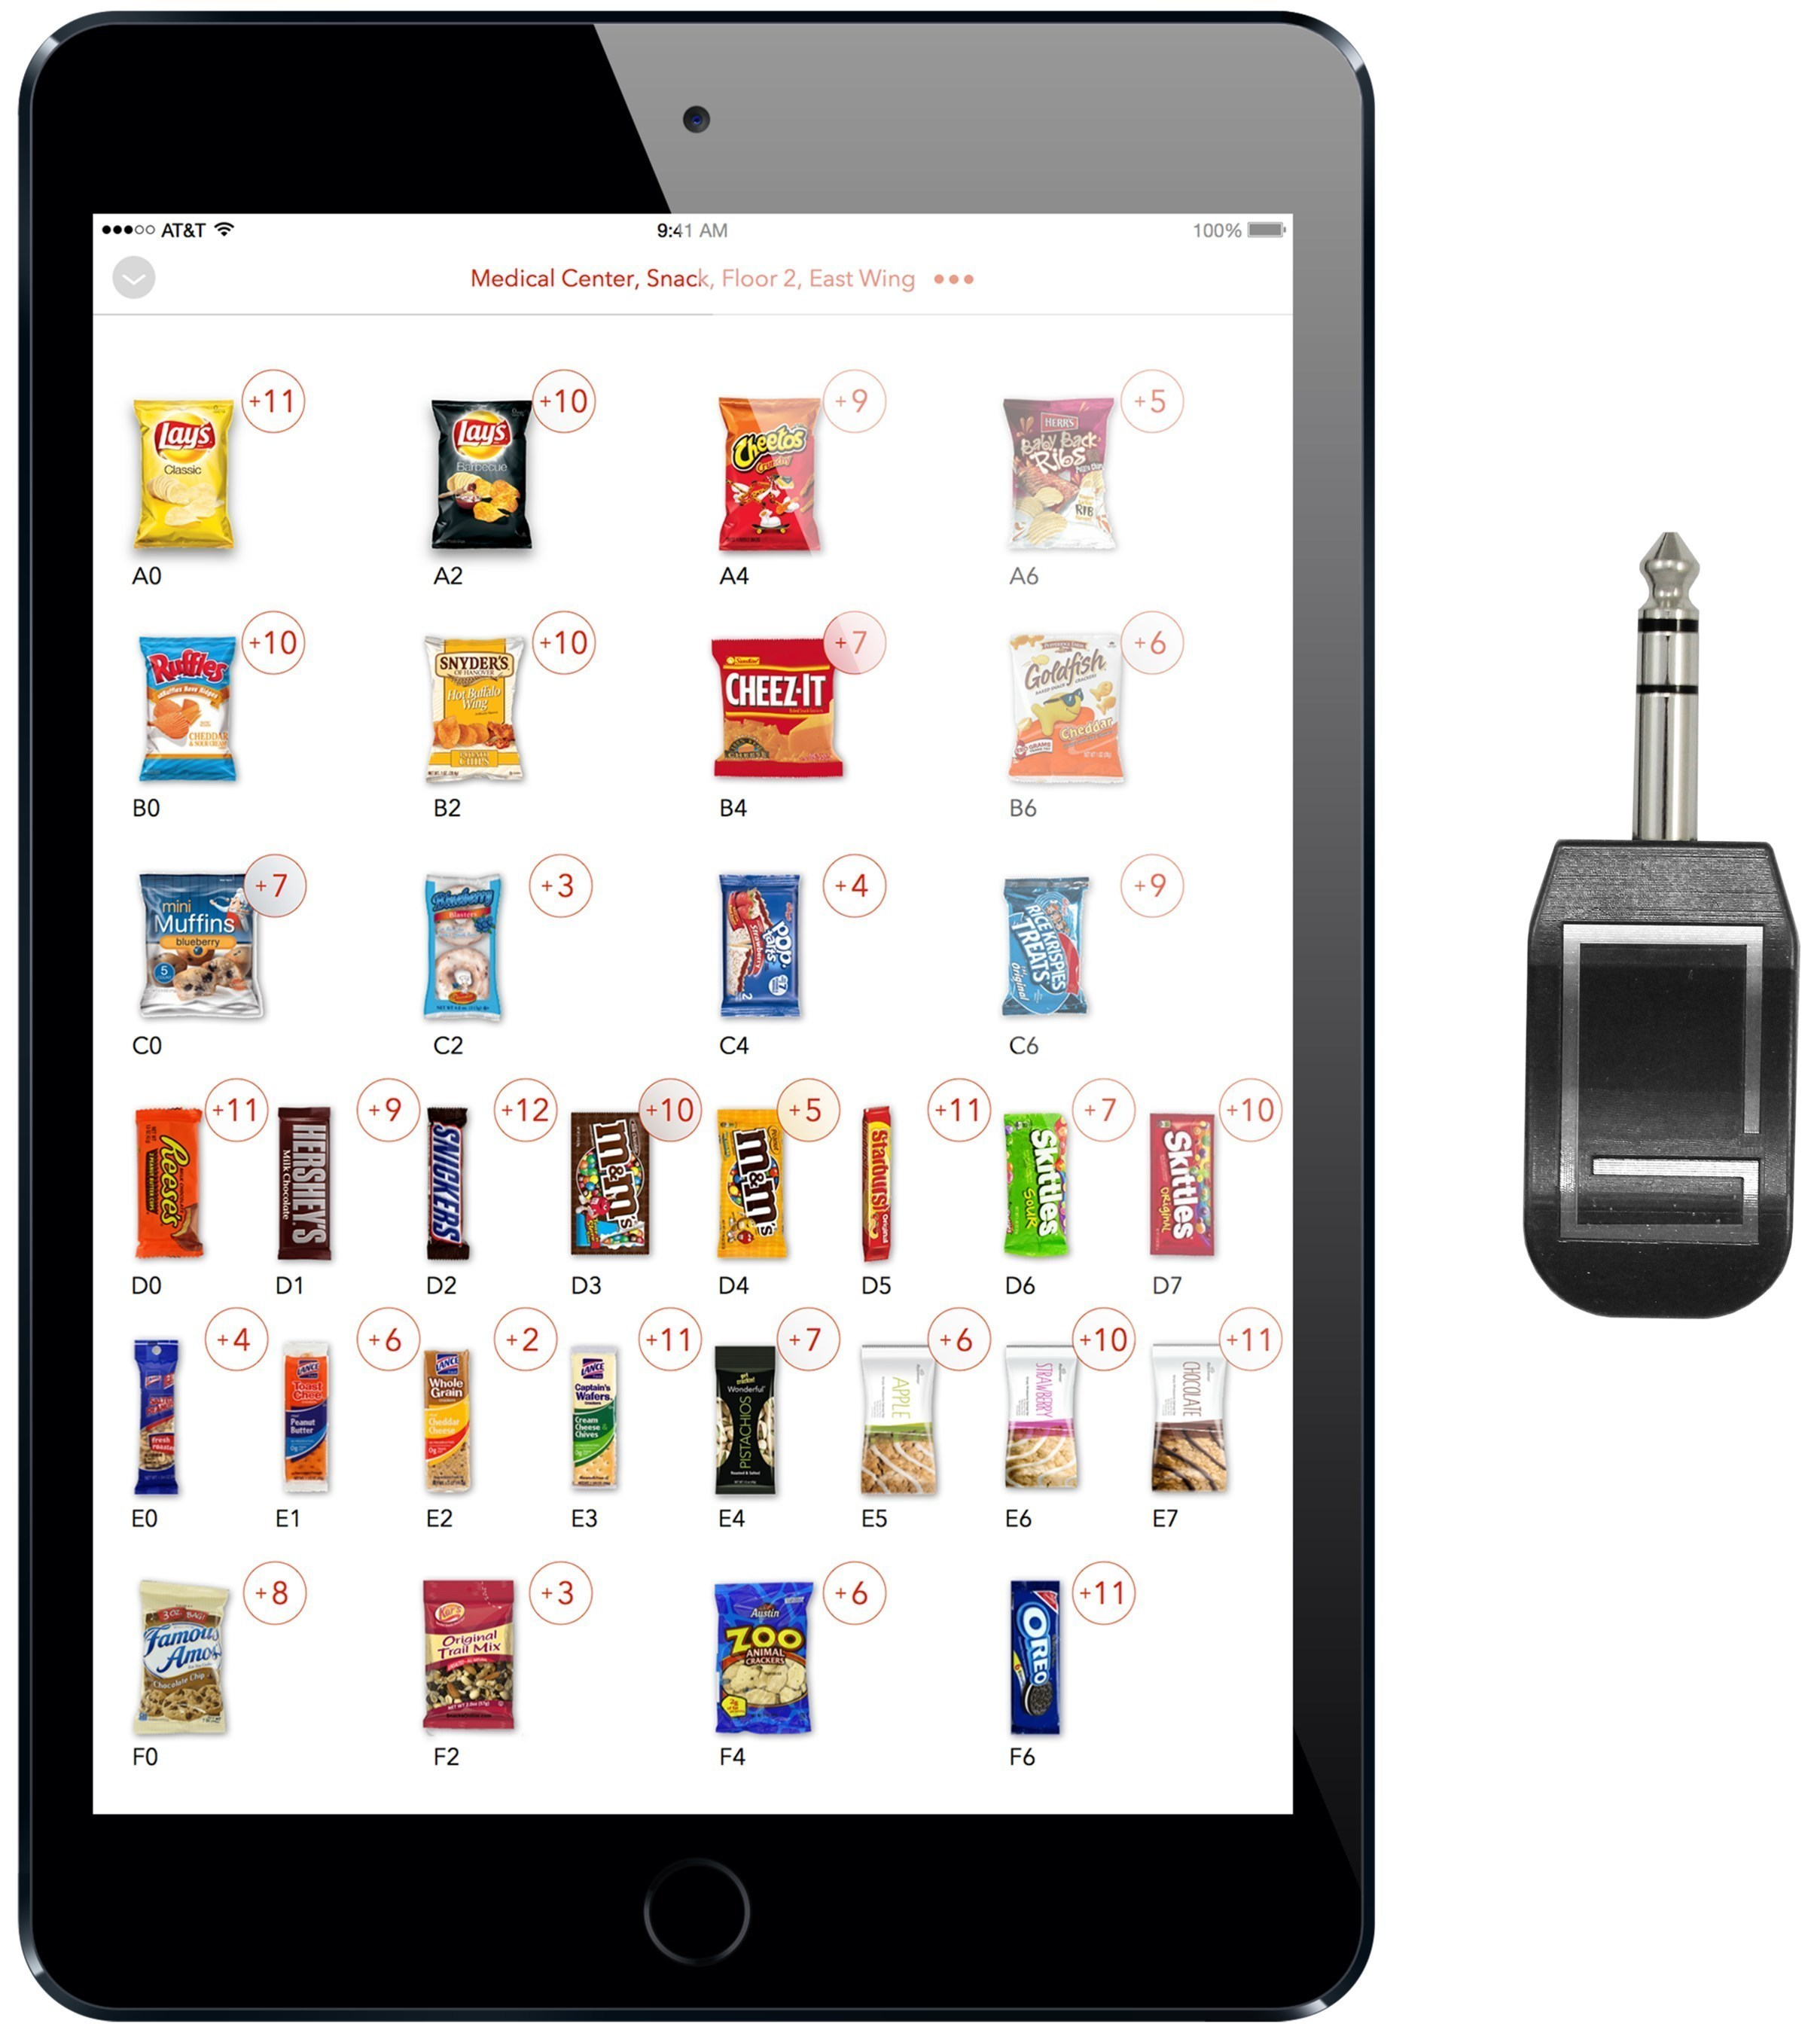 The Gimme Key and iPad-based Gimme Drive app replace current, antiquated wired handhelds and seamlessly integrate with existing vending management software programs.